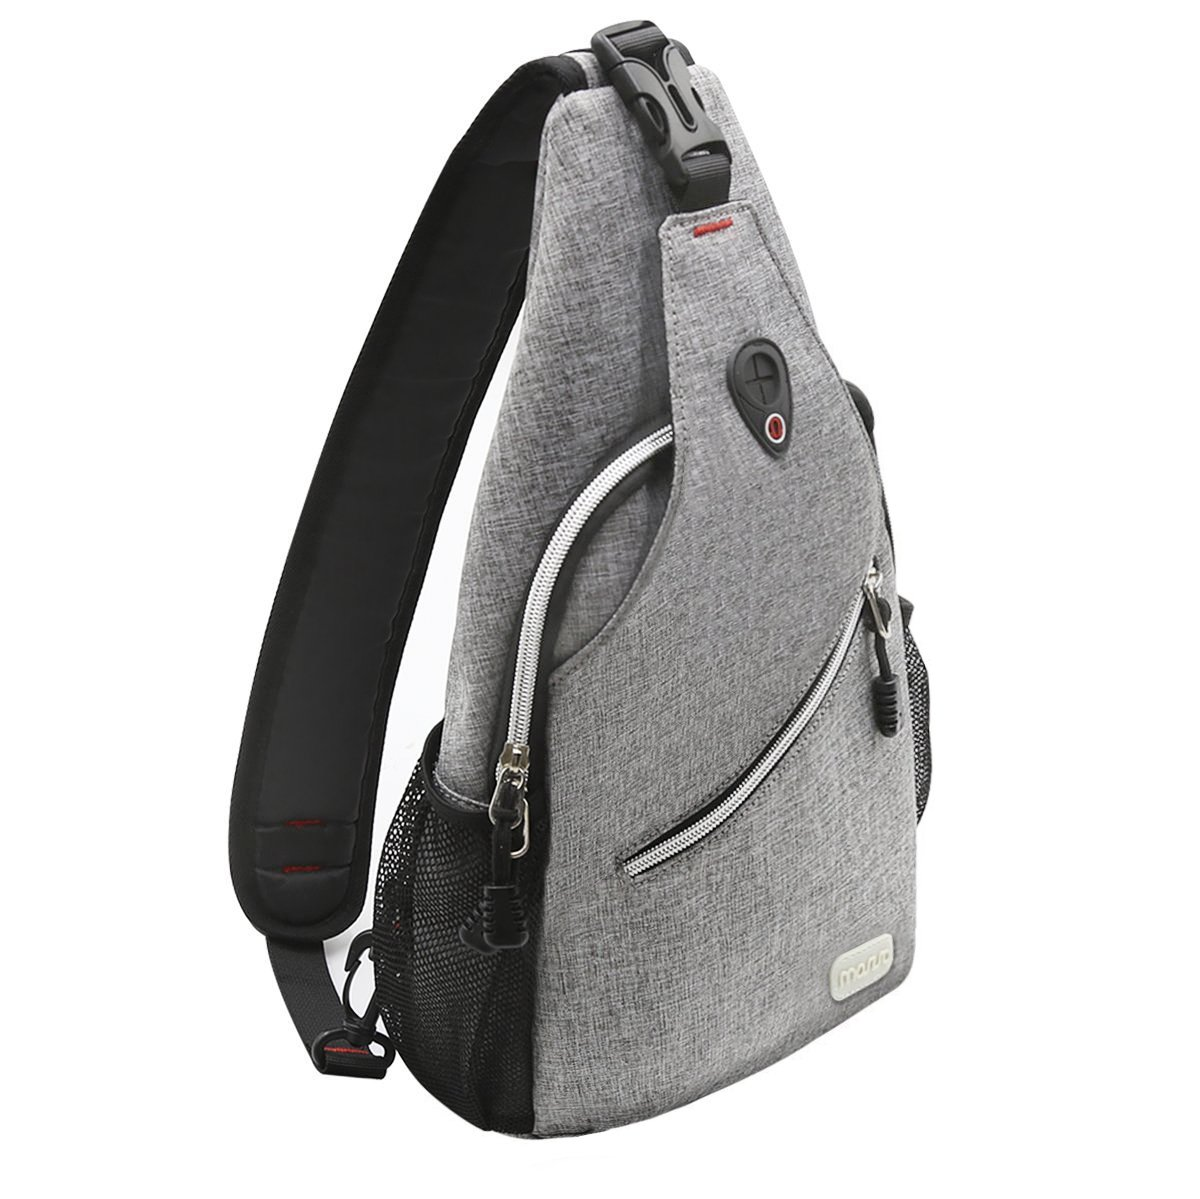 MOSISO Sling Backpack, Polyester Crossbody Shoulder Bag for Men Women Girls Boys, Gray